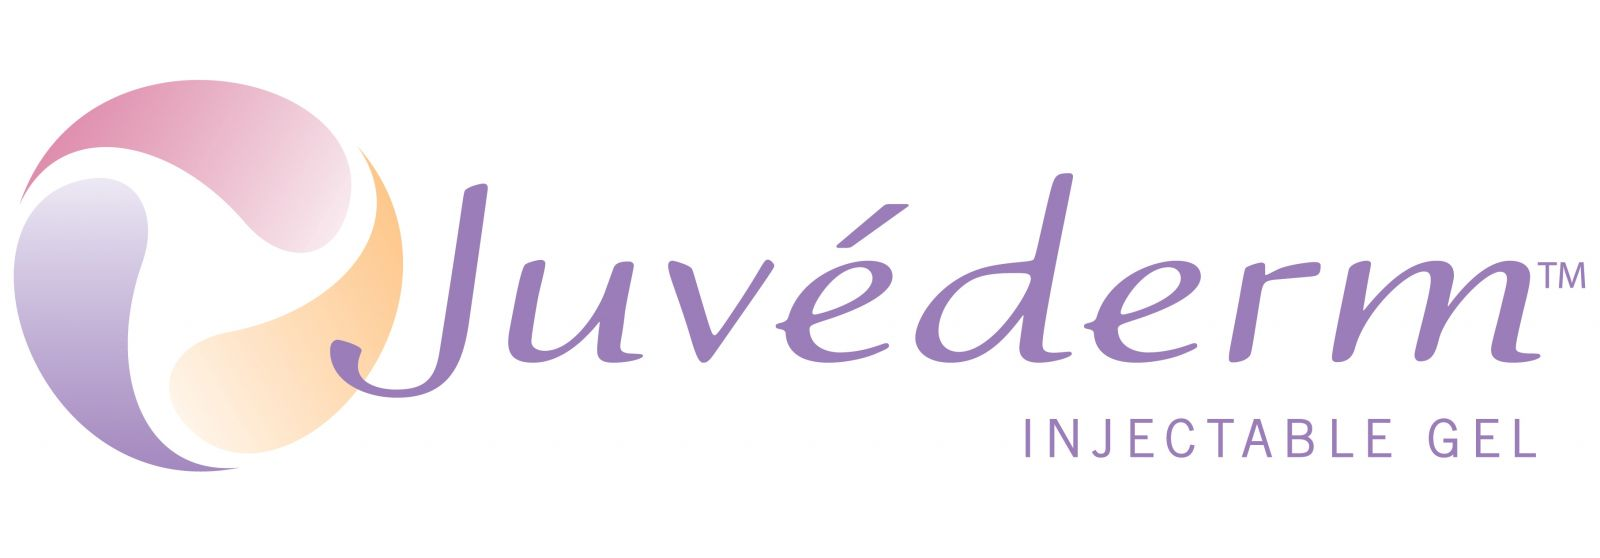 juvederm cosmetic facial fillers